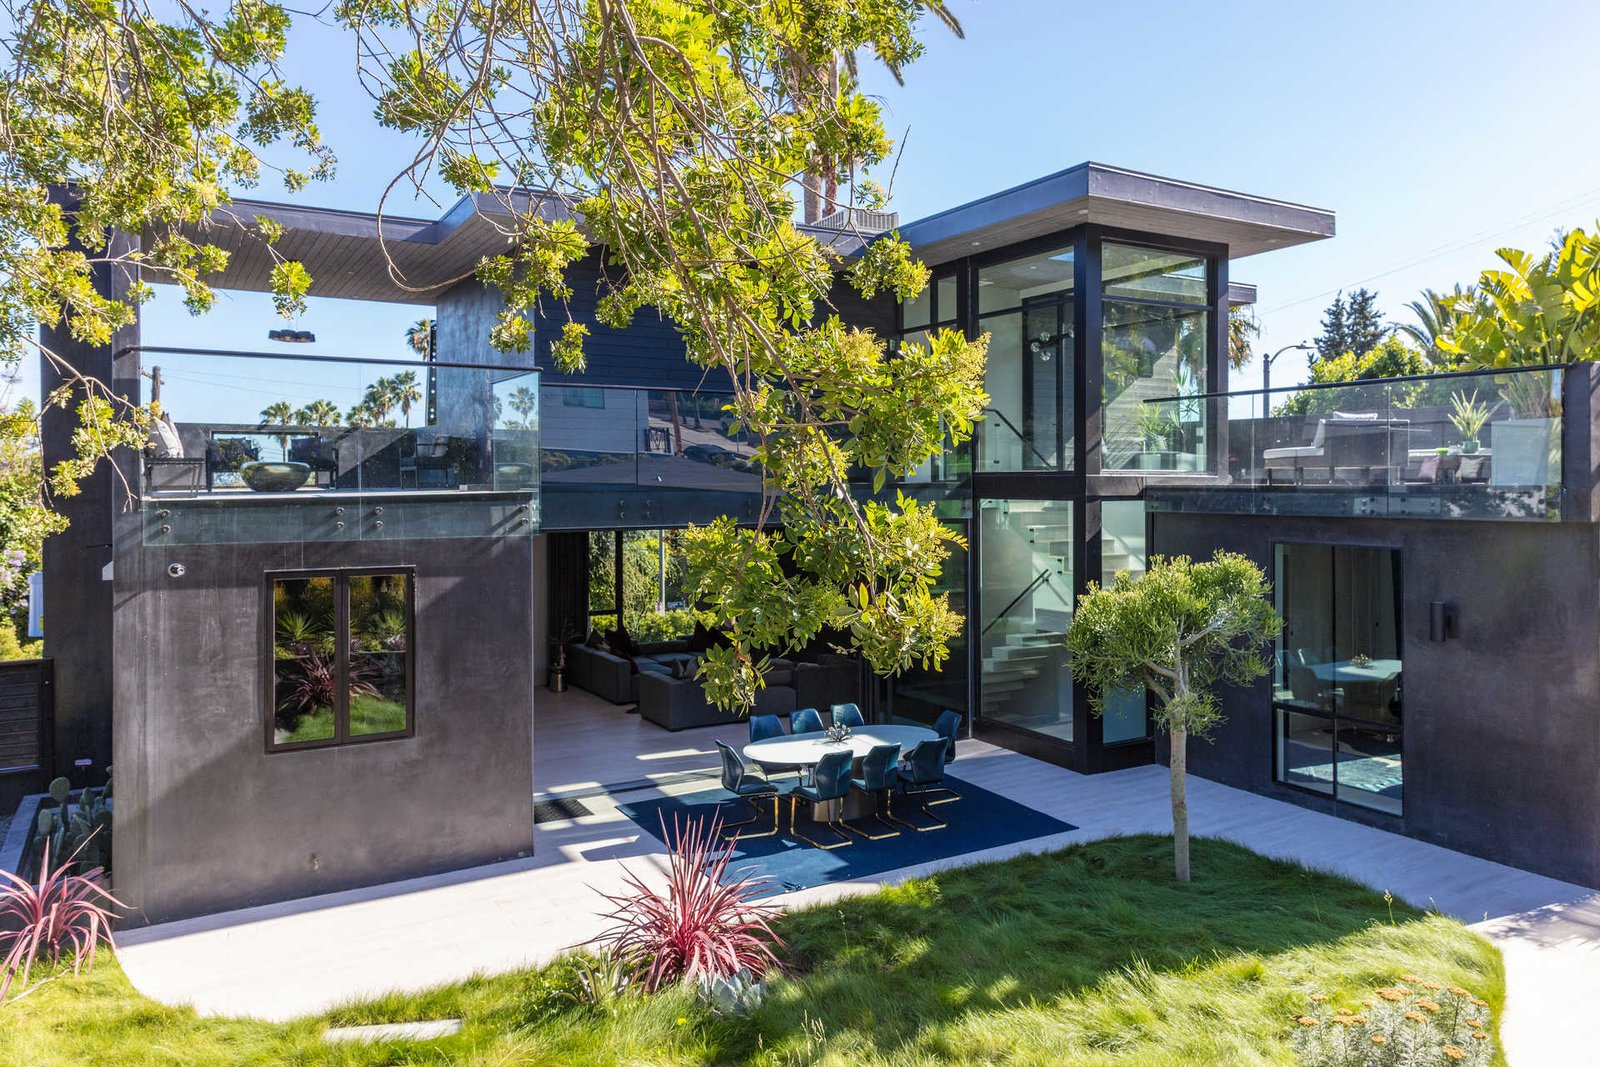 Outdoor, Back Yard, Side Yard, and Large Patio, Porch, Deck  Italian Modernist Home